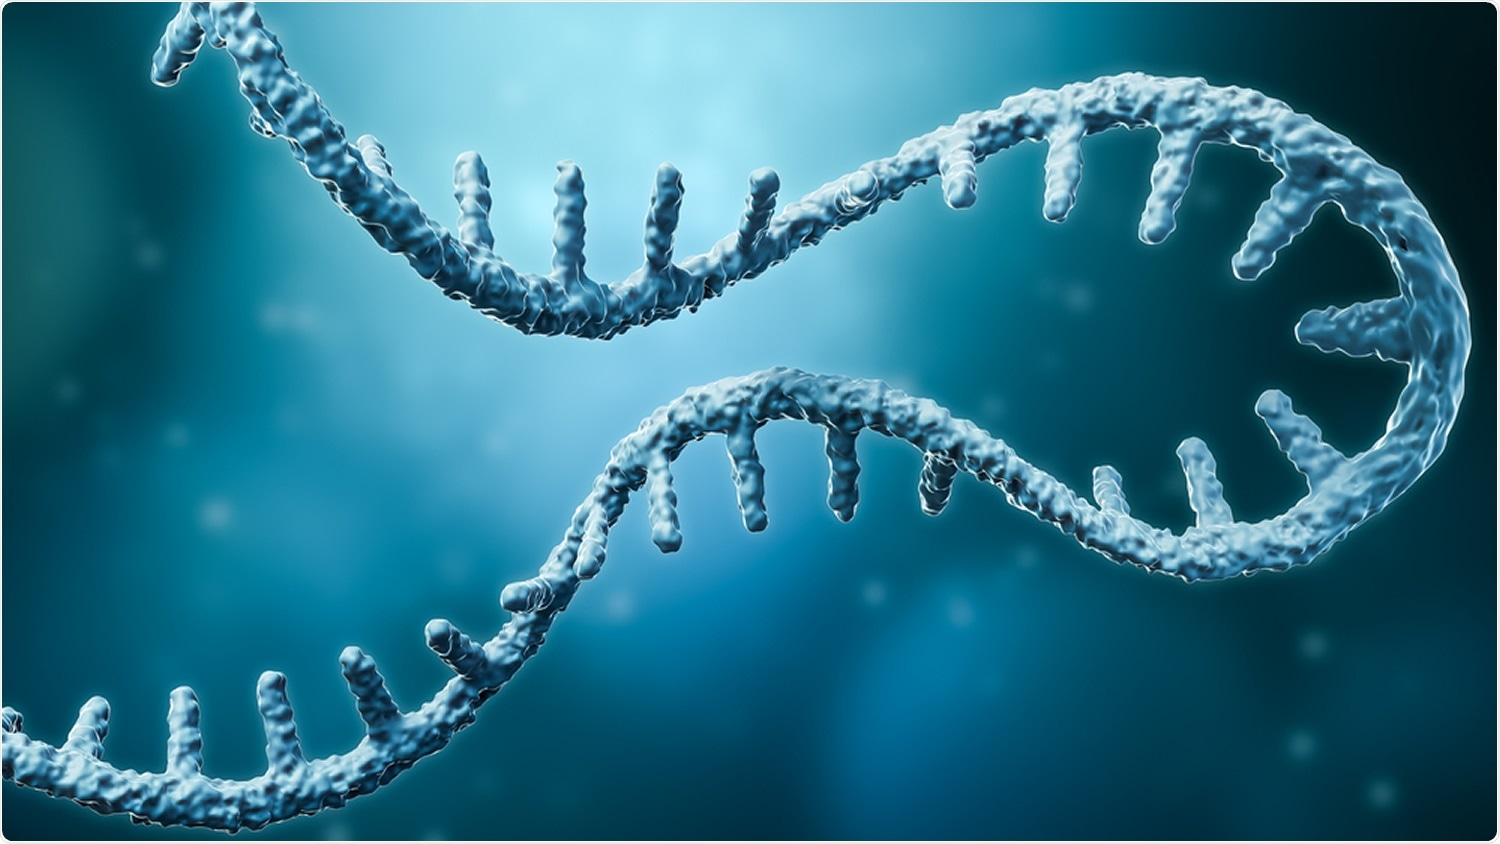 Review: mRNA vaccines for infectious diseases: principles, delivery and clinical translation Image Credit: MattLphotography / Shutterstock